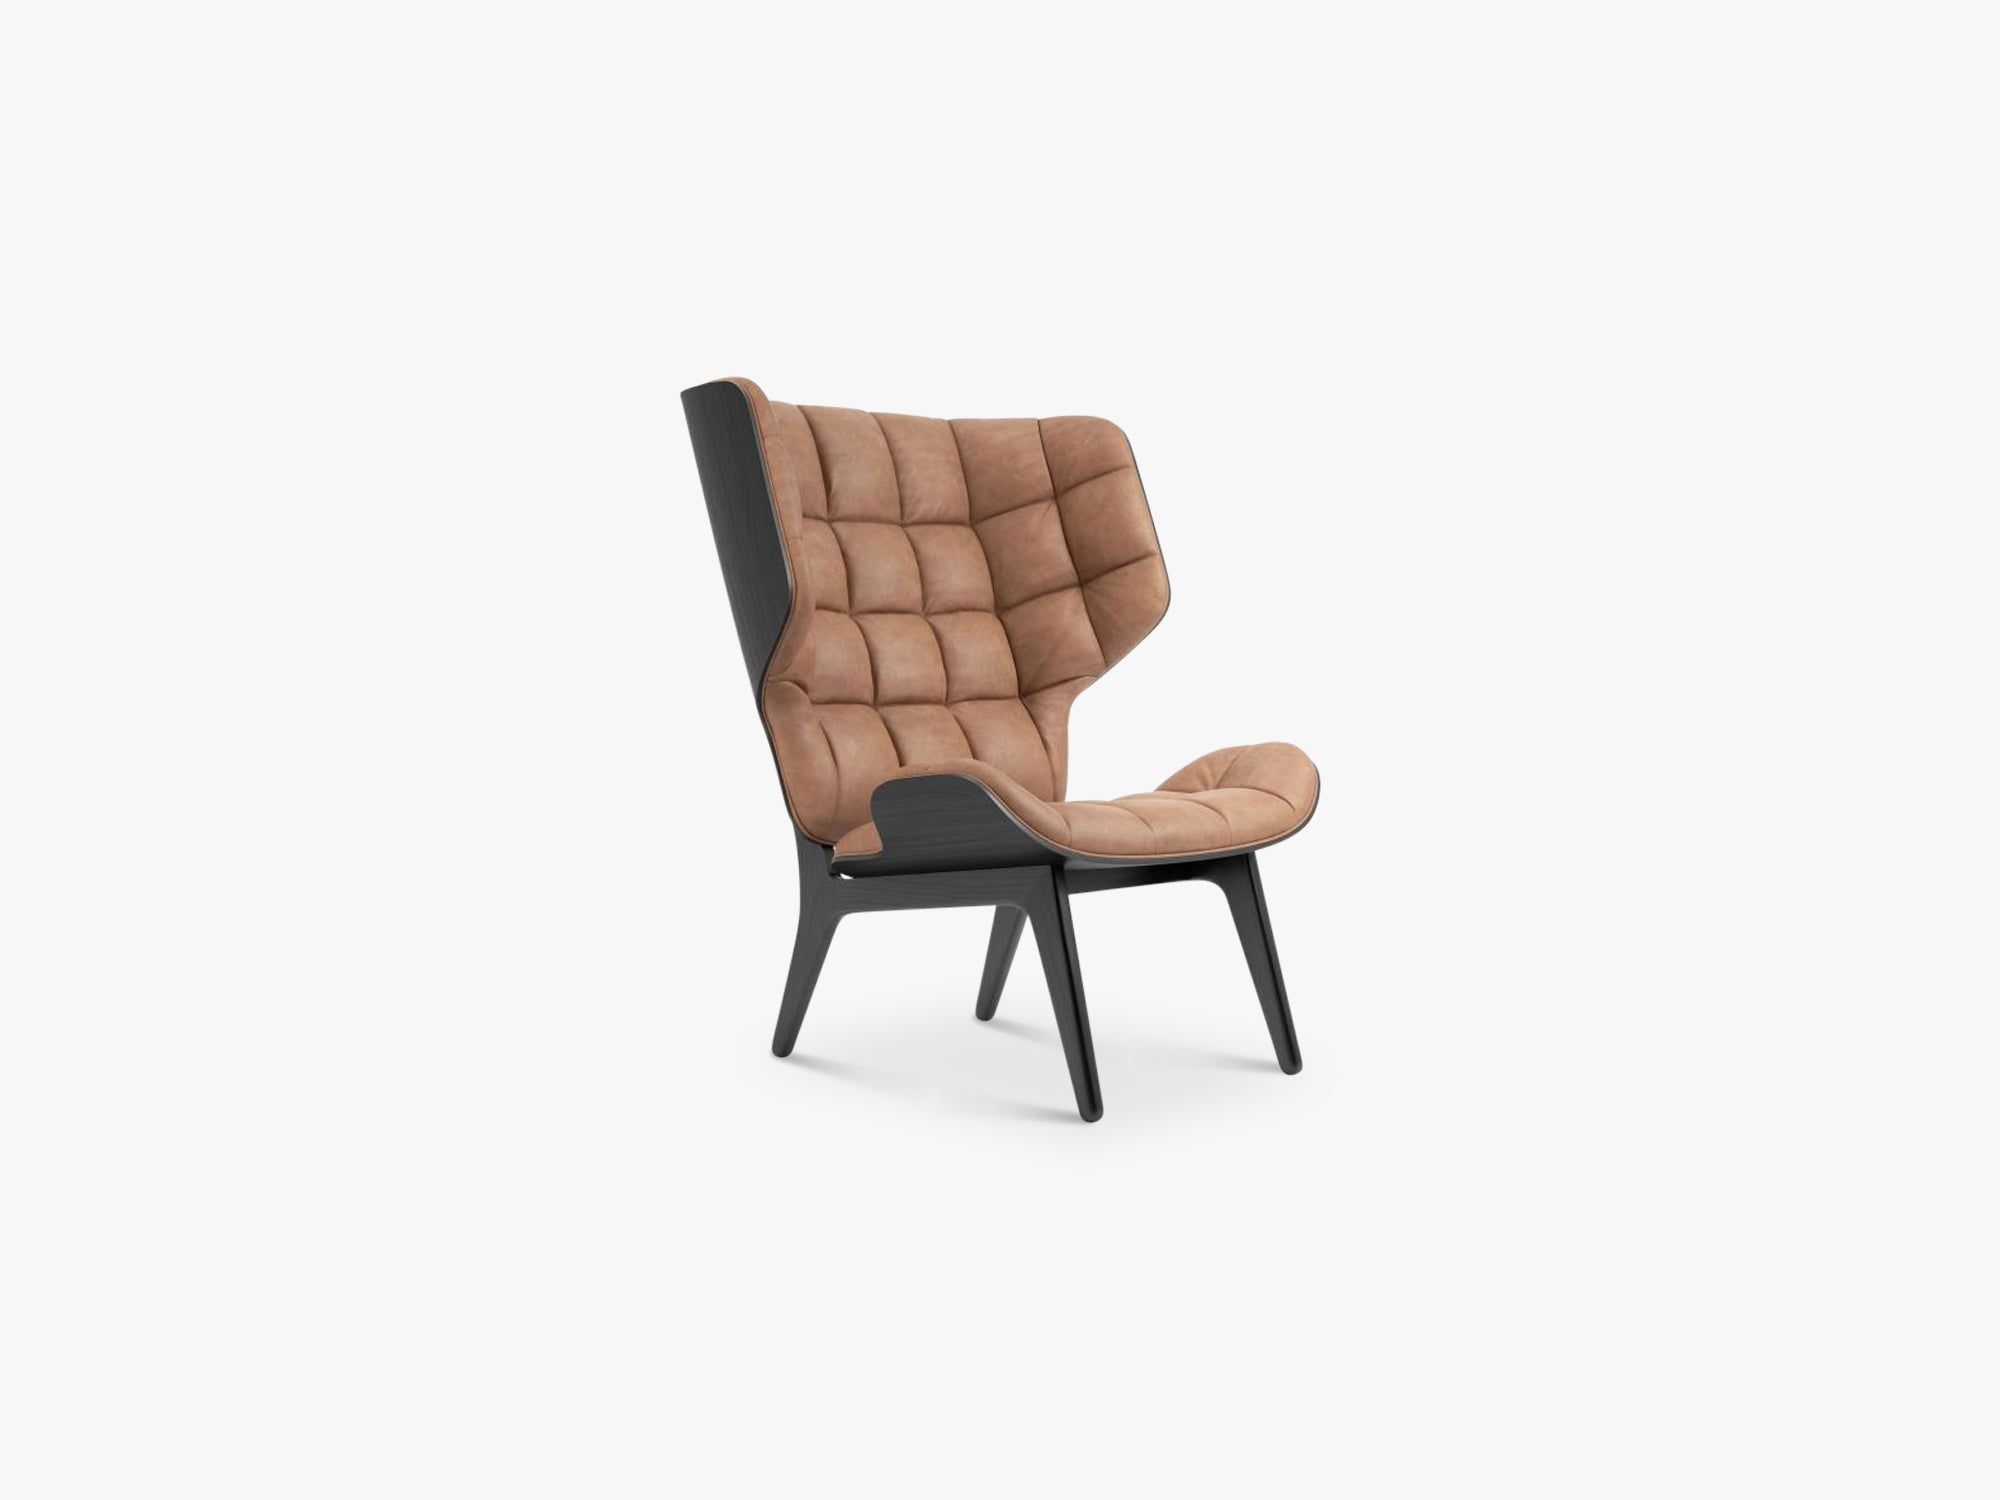 Mammoth Chair, Black/Camel fra NORR11